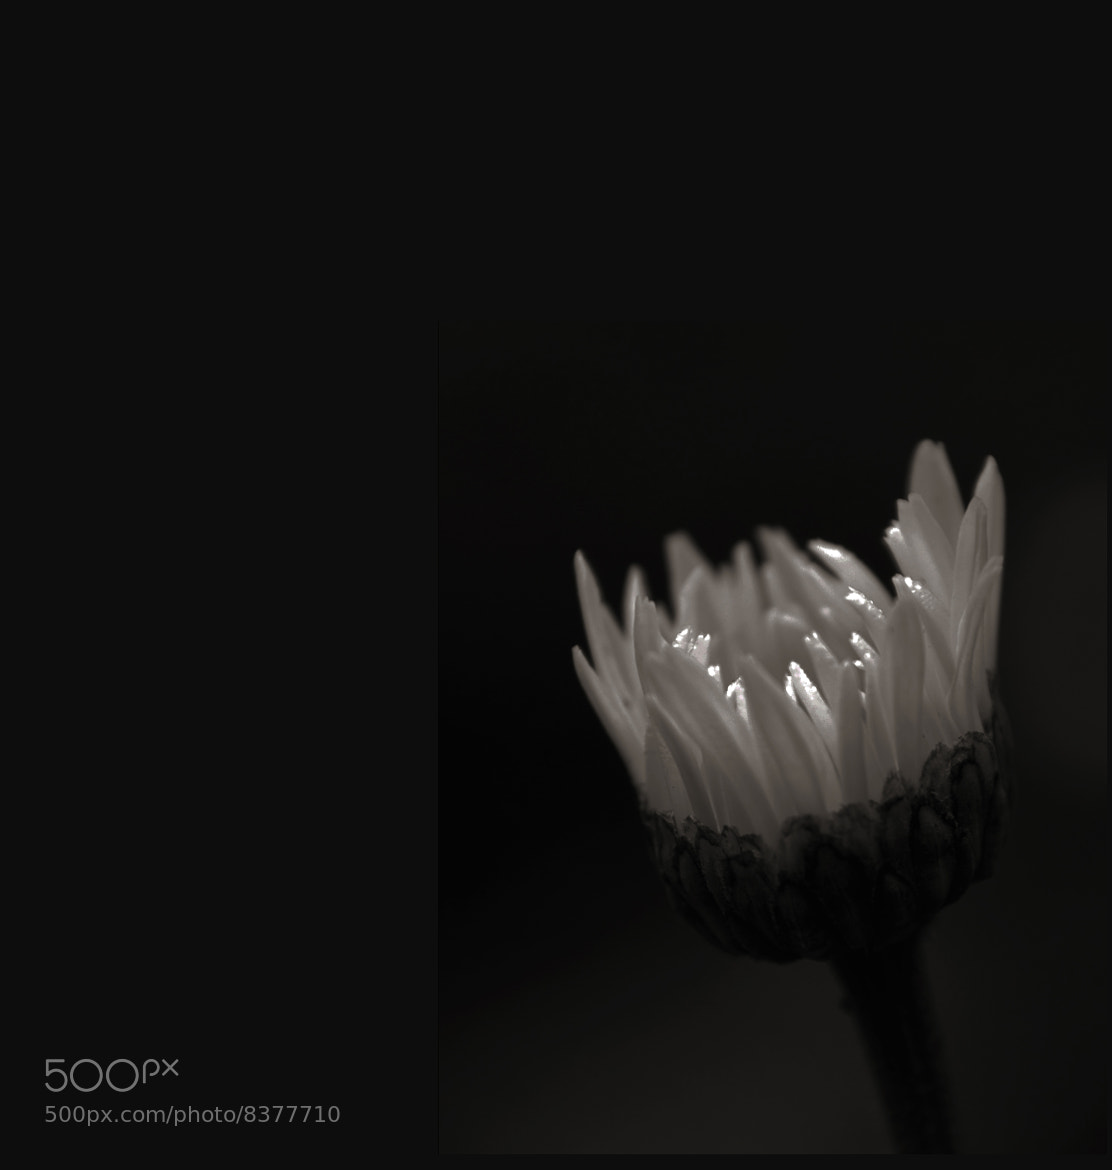 Photograph Daisy Coming UP by Mark Luftig on 500px